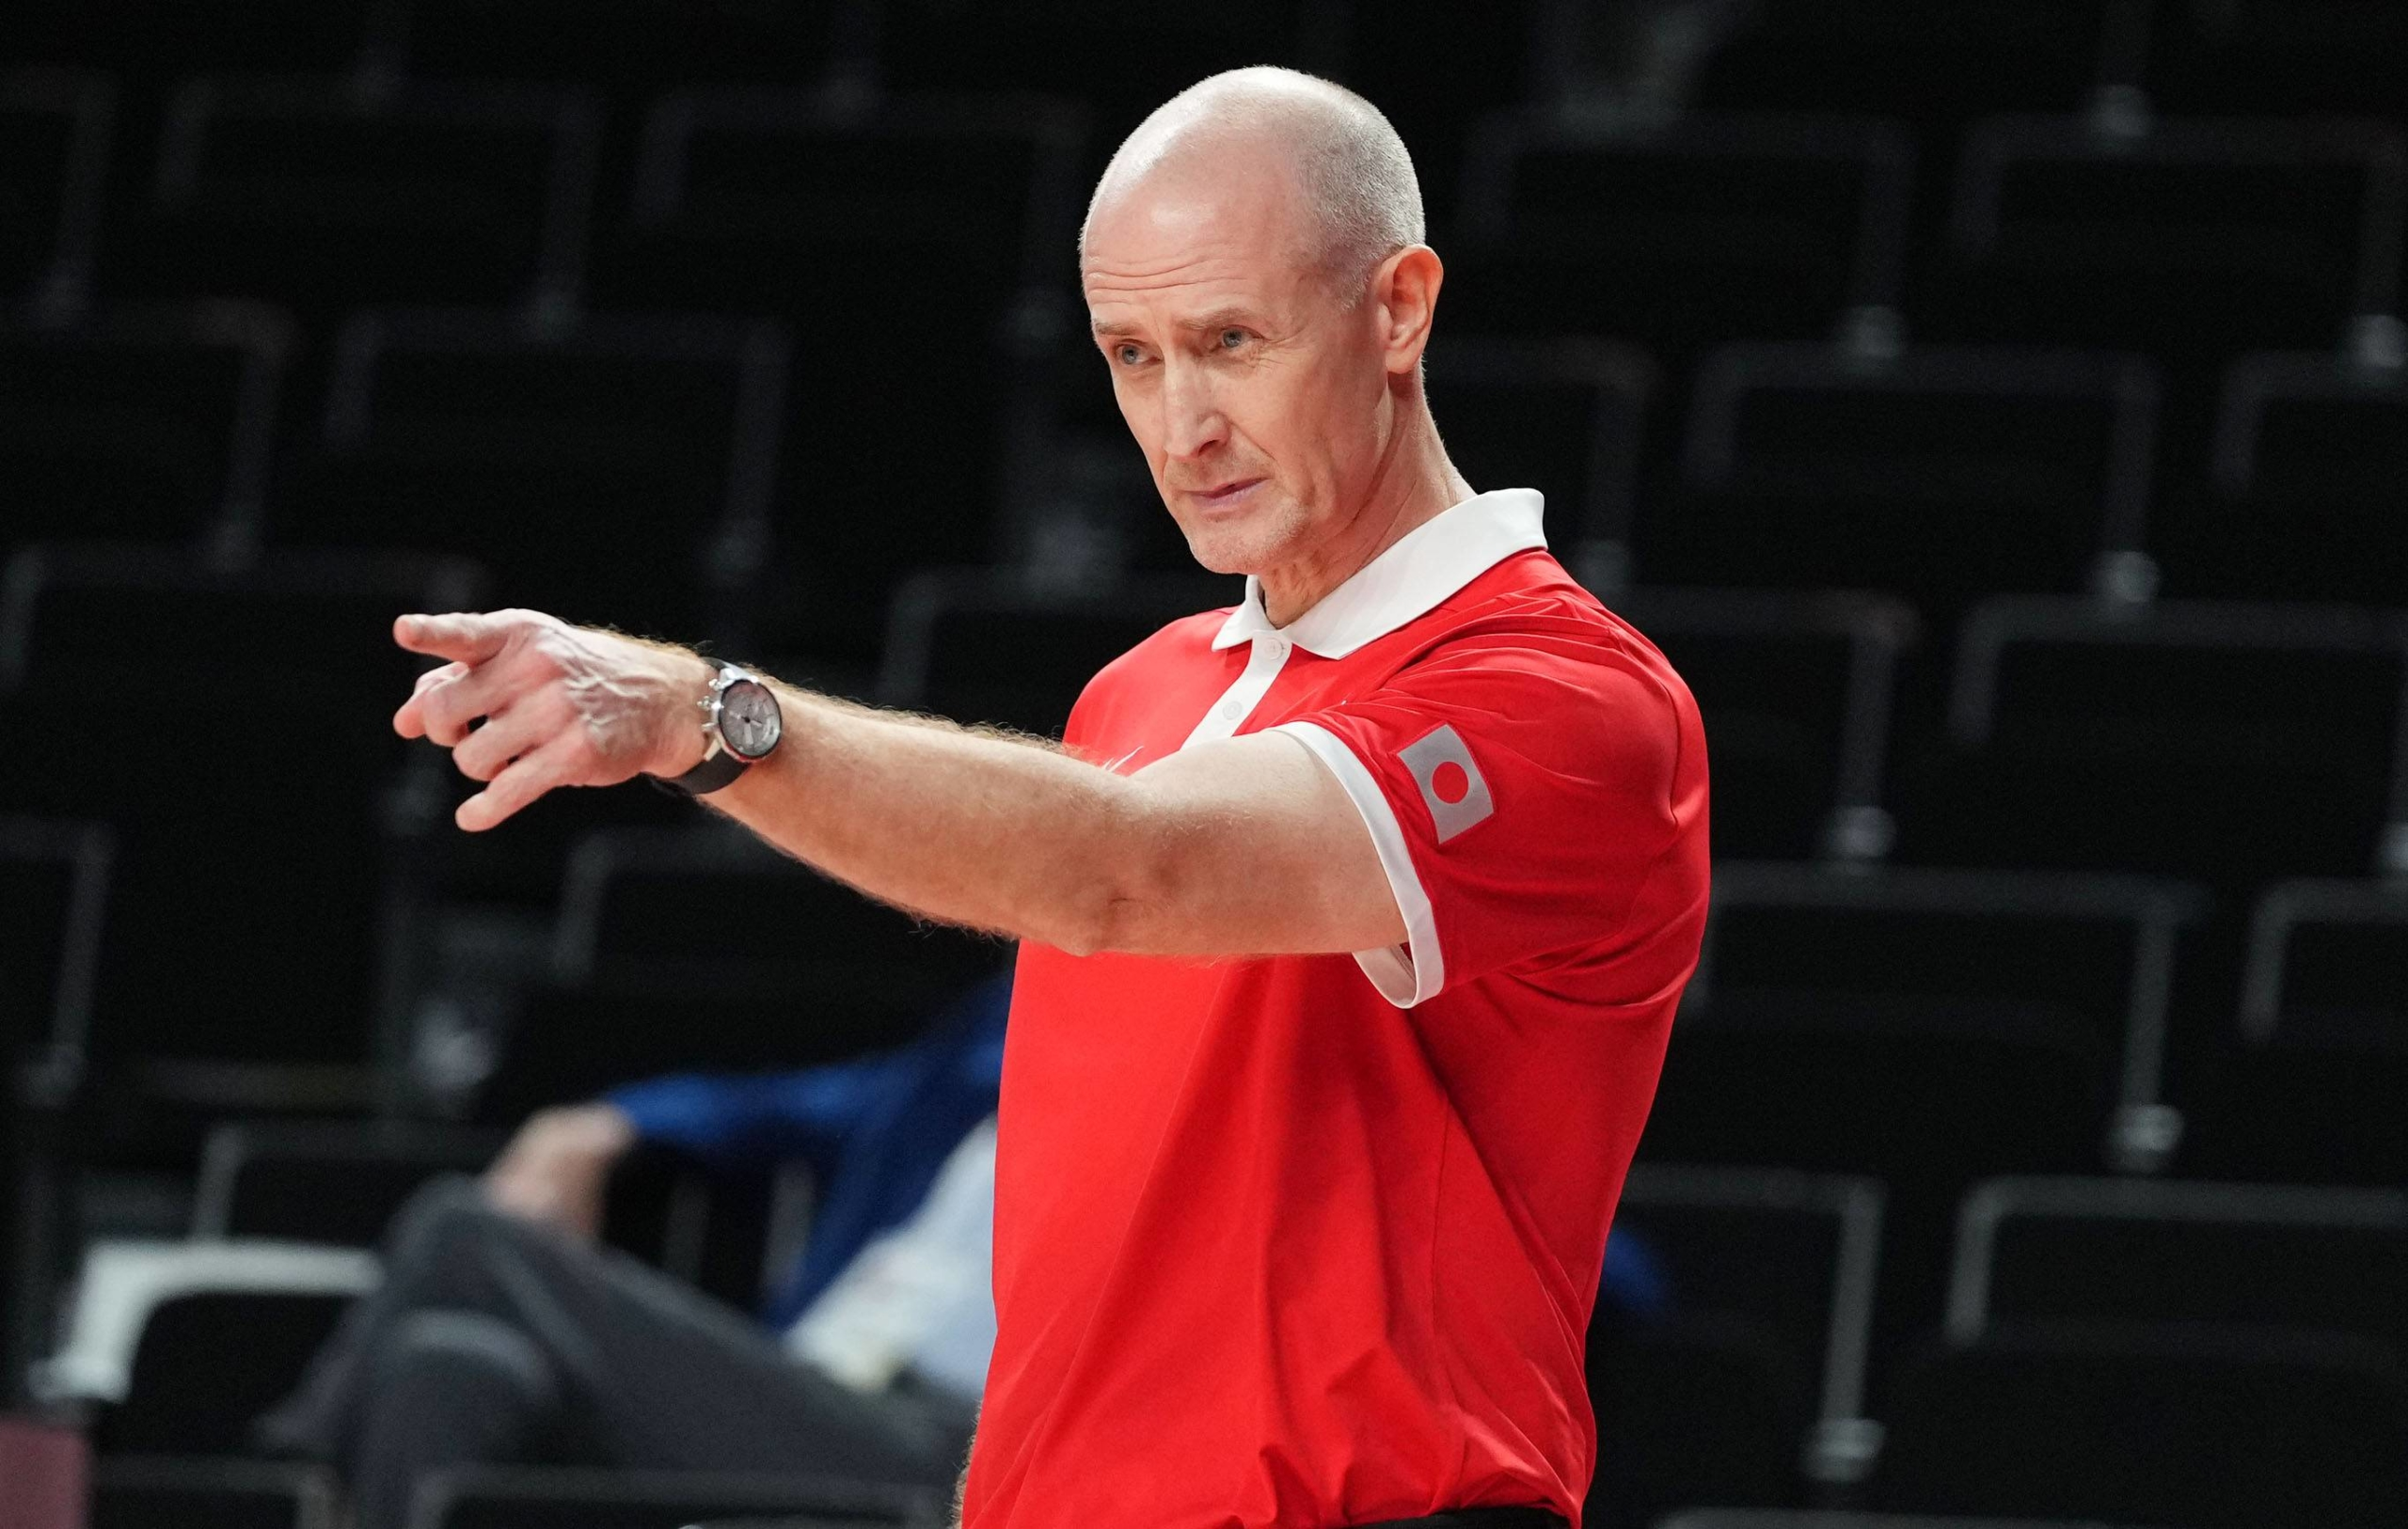 Tom Hovasse, who coached the Akatsuki Five women's team to silver at the Tokyo Games, has been announced as the new head coach of Japan's men's team. | USA TODAY / VIA REUTERS